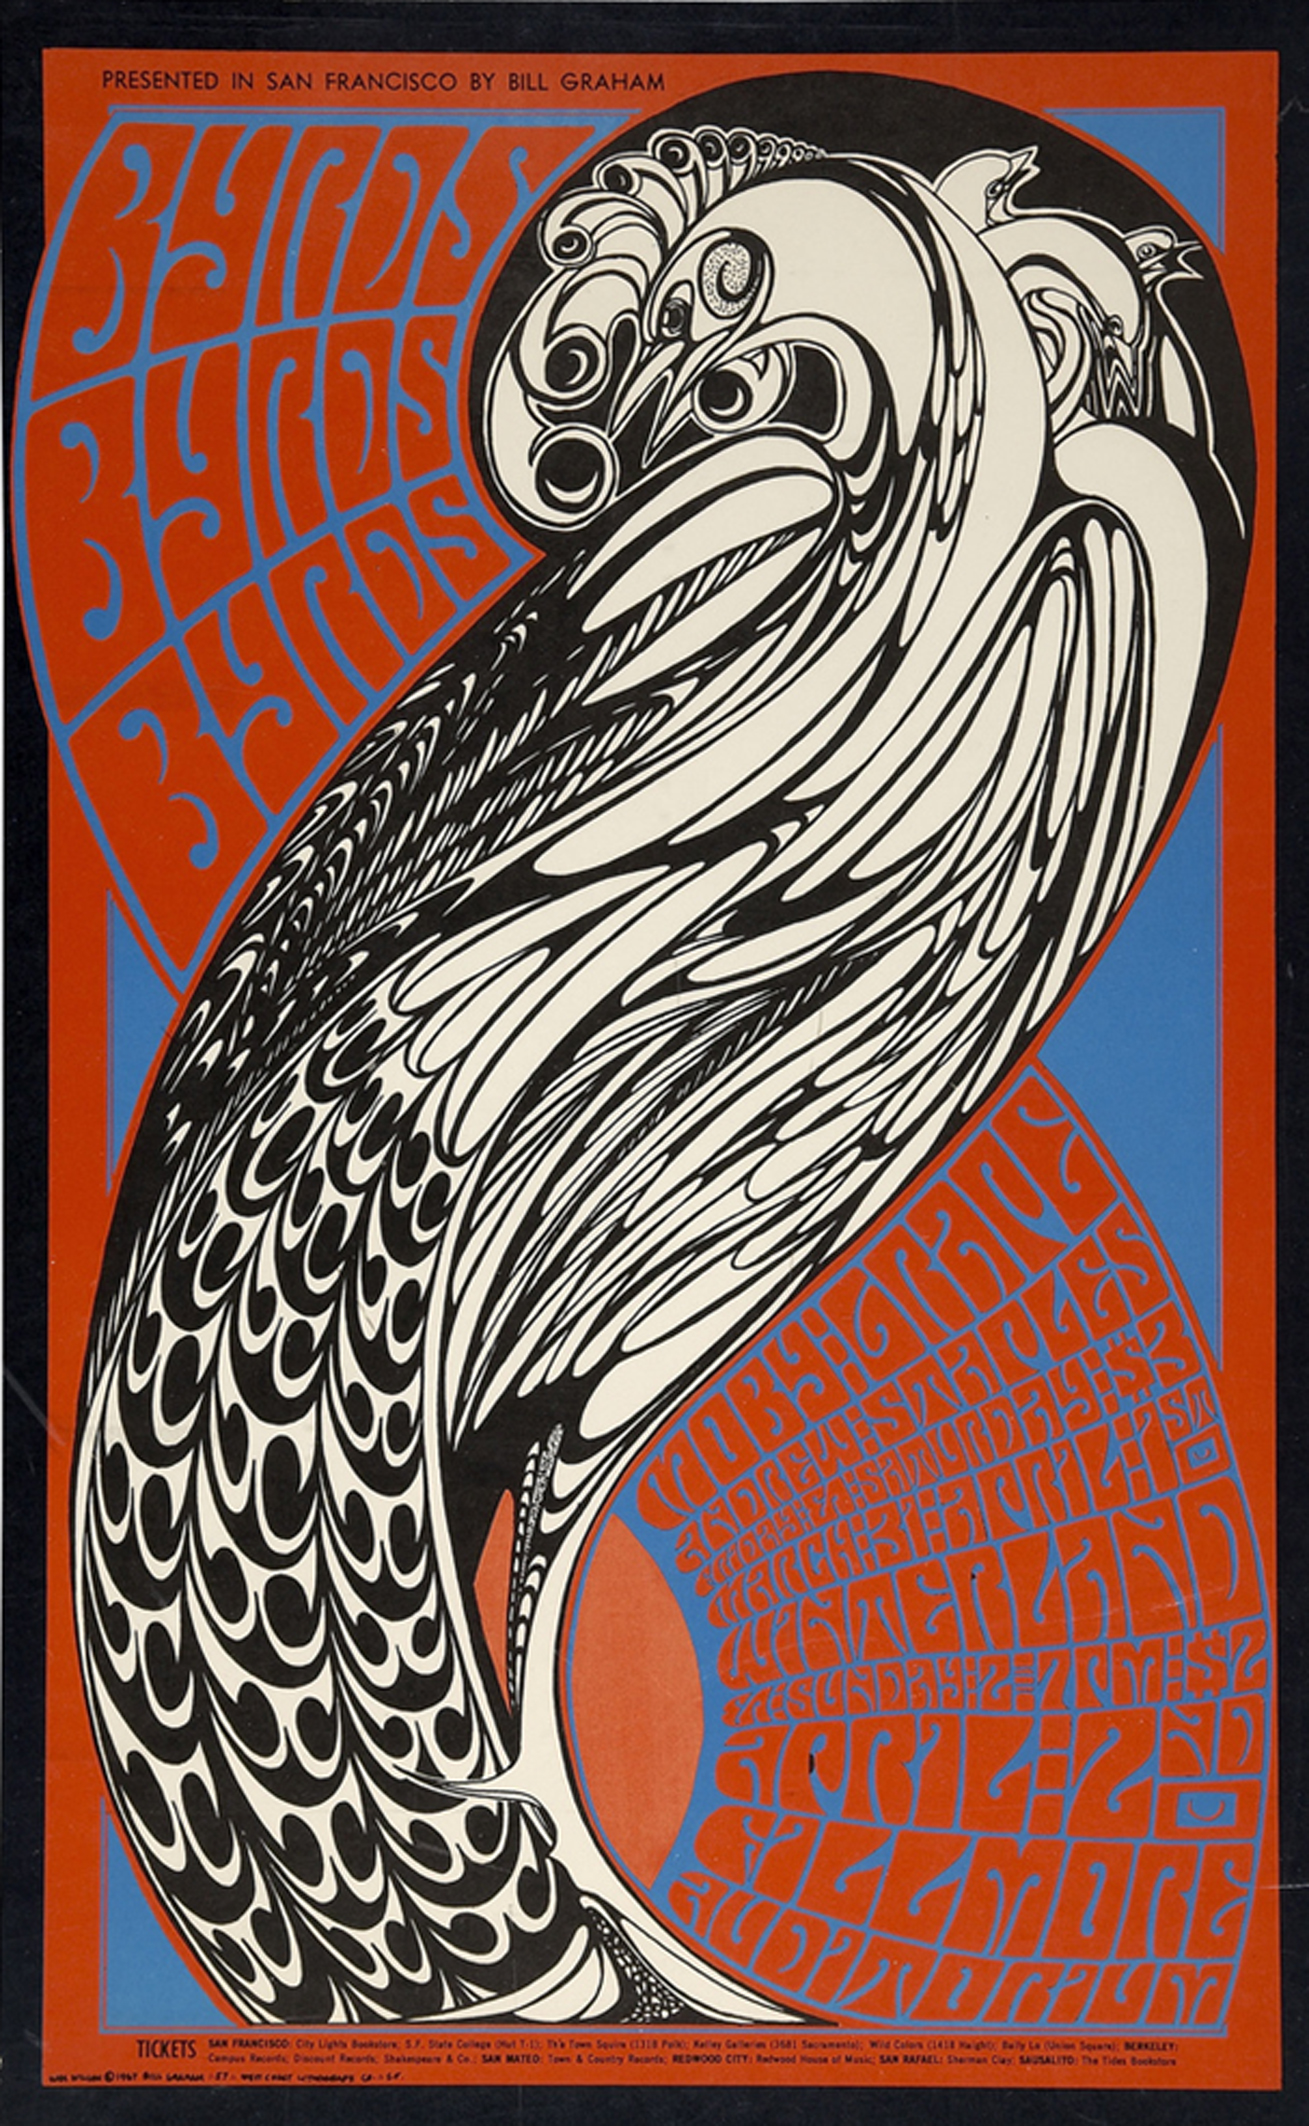 The Byrds, Moby Grape Winterland Concert 1967